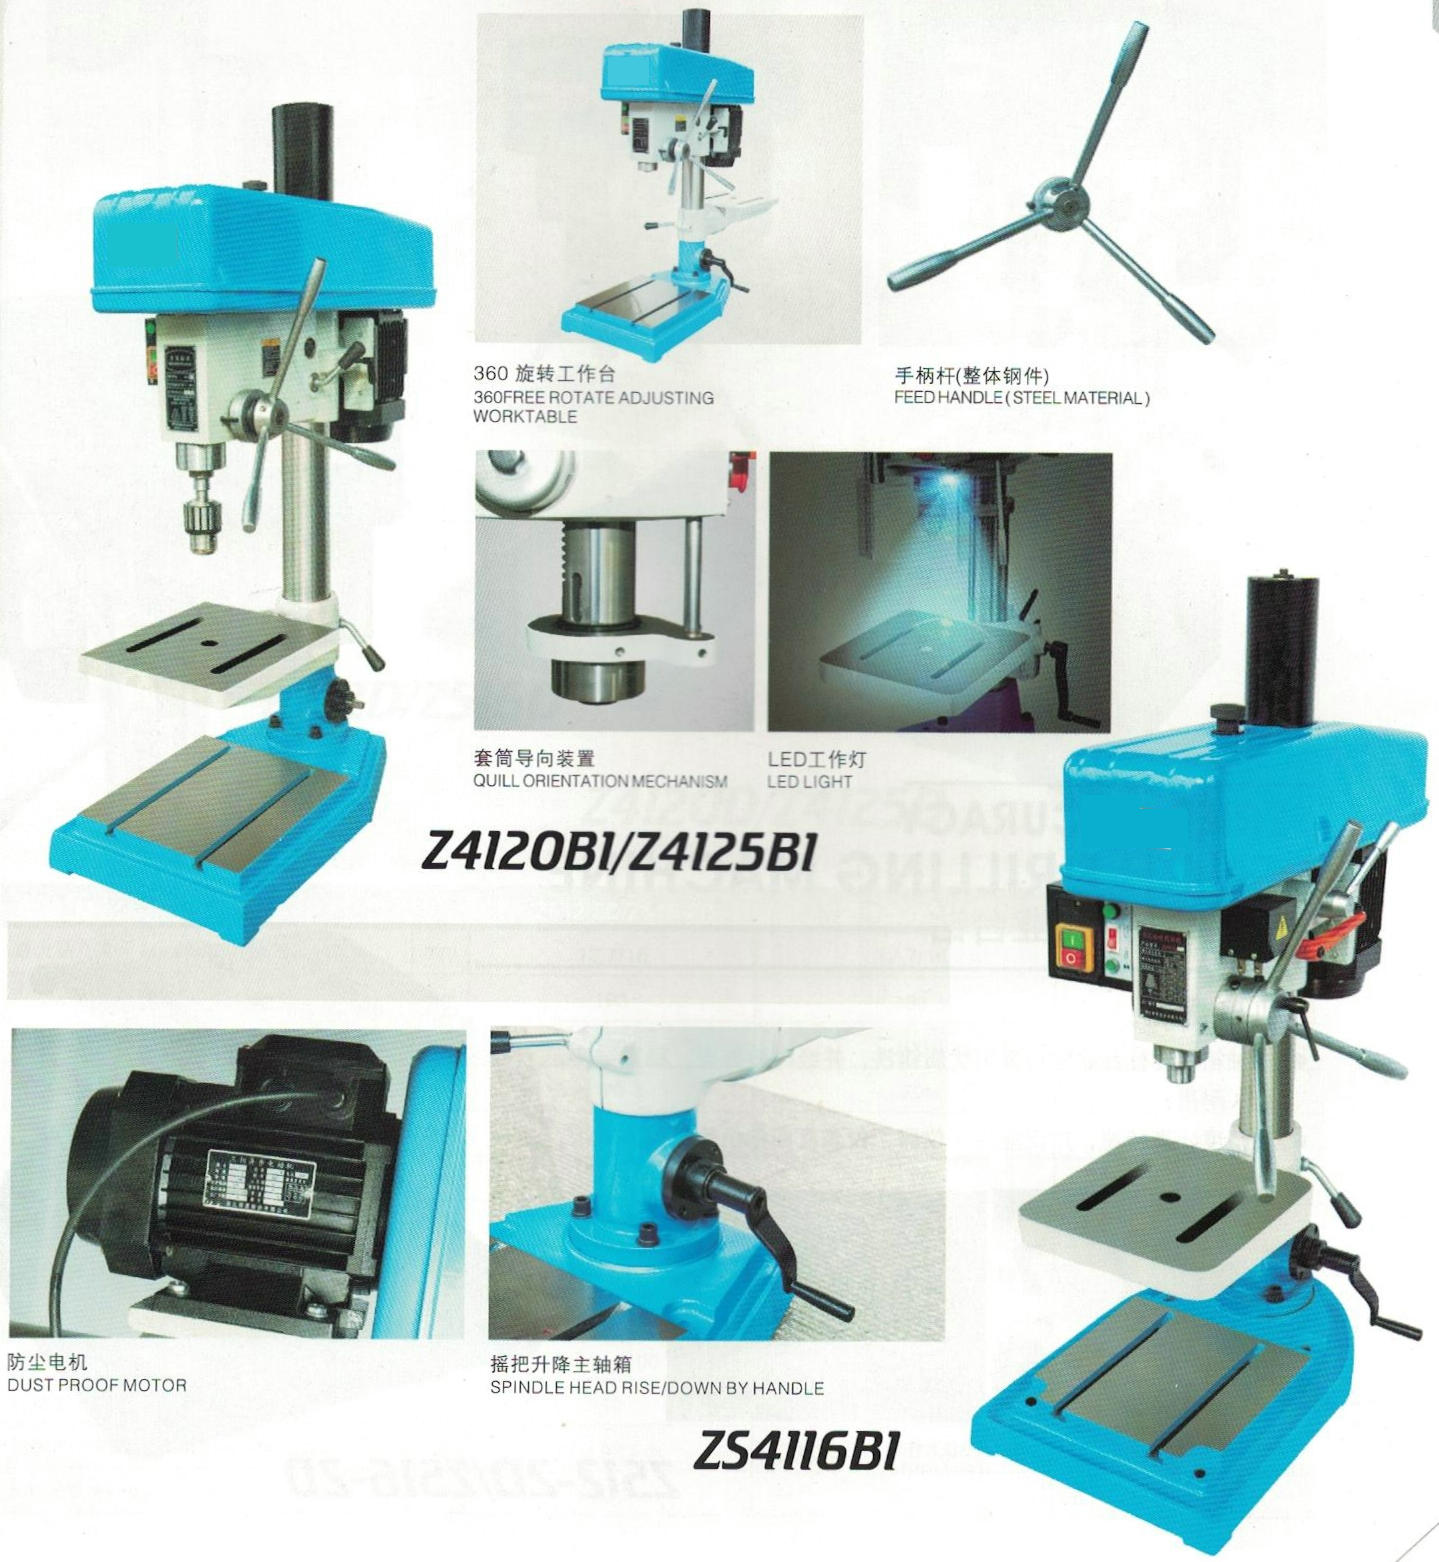 B1 SERIES PREMIUM QUALITY DRILLING &TAPPING MACHINE ZS4120B1